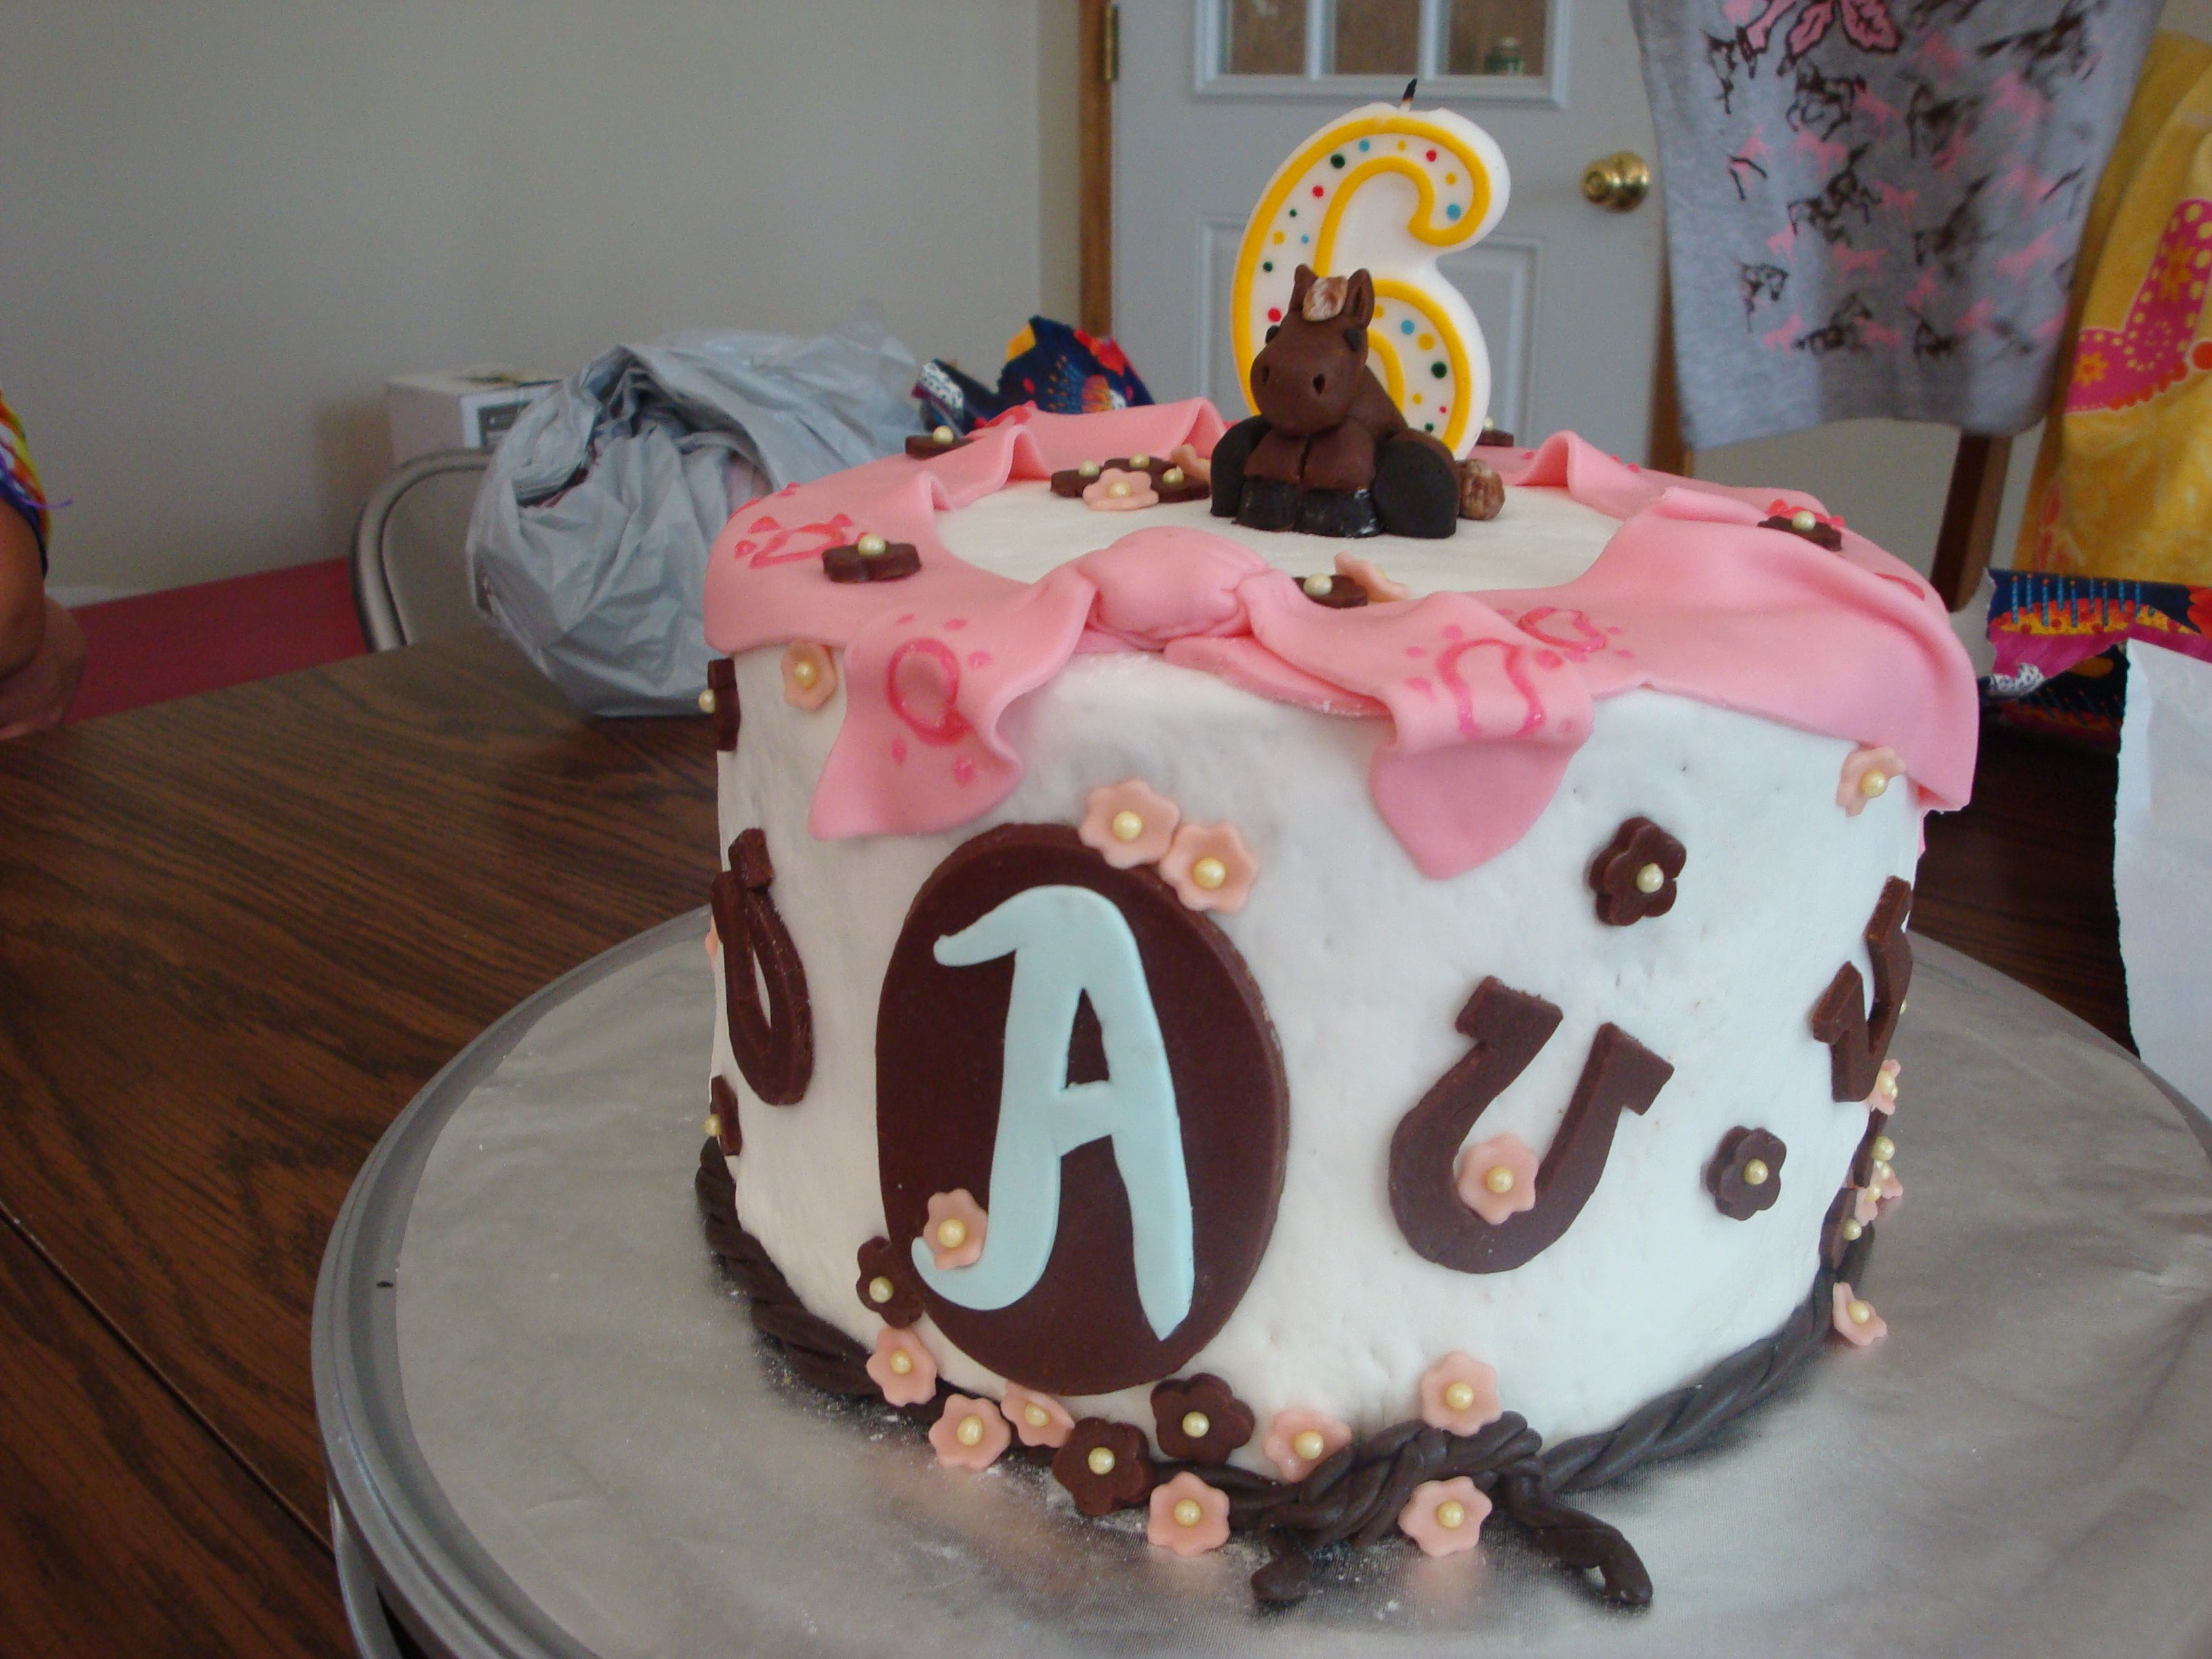 Birthday Cake For Little Sister ~ My little sister 6th birthday cake was made by for heaven's cakes